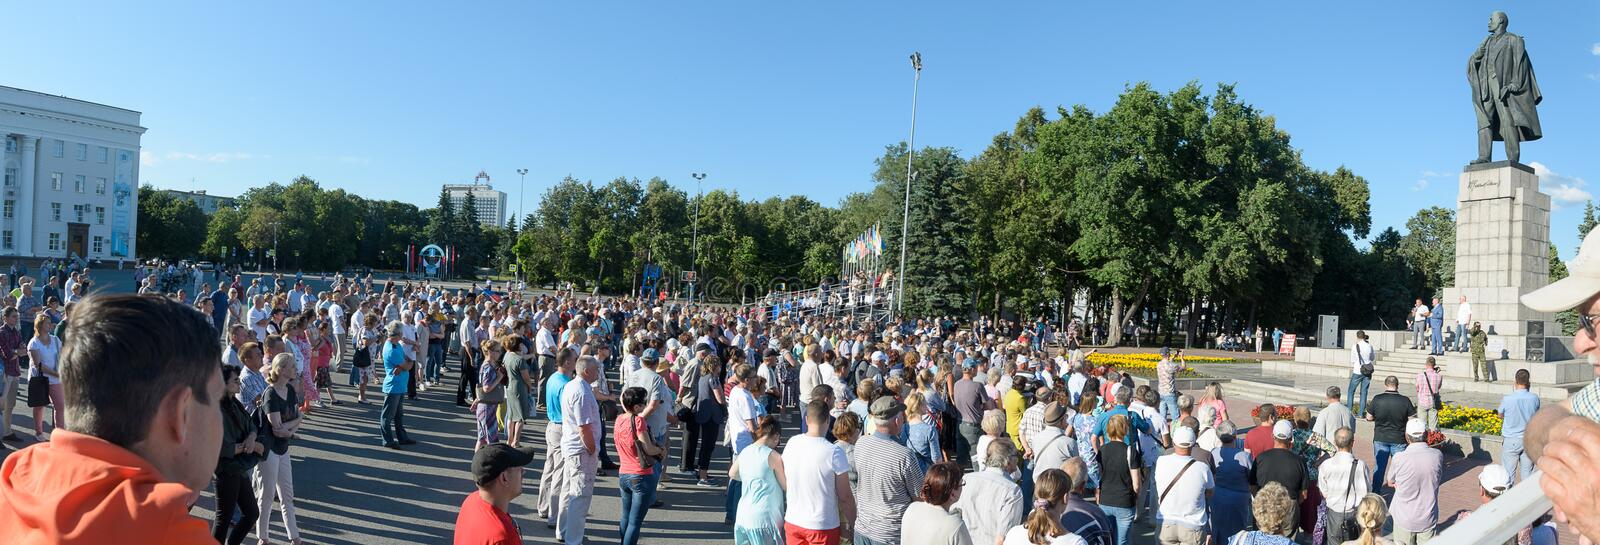 Russia, Ulyanovsk, July 9, 2018 Rally against raising the retirement age and taxes royalty free stock photography